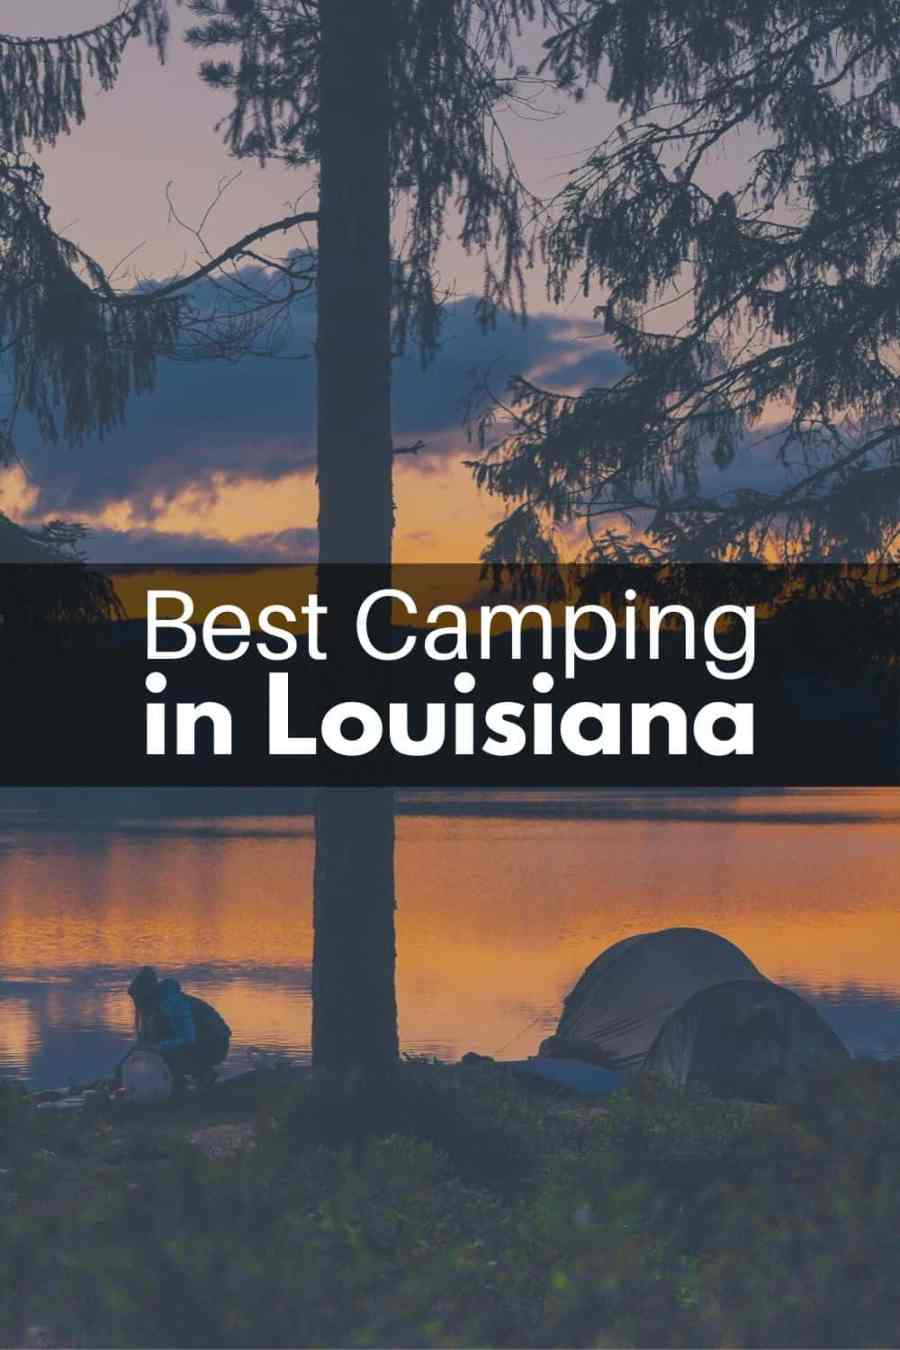 Best Camping Places To Check Out in Louisiana